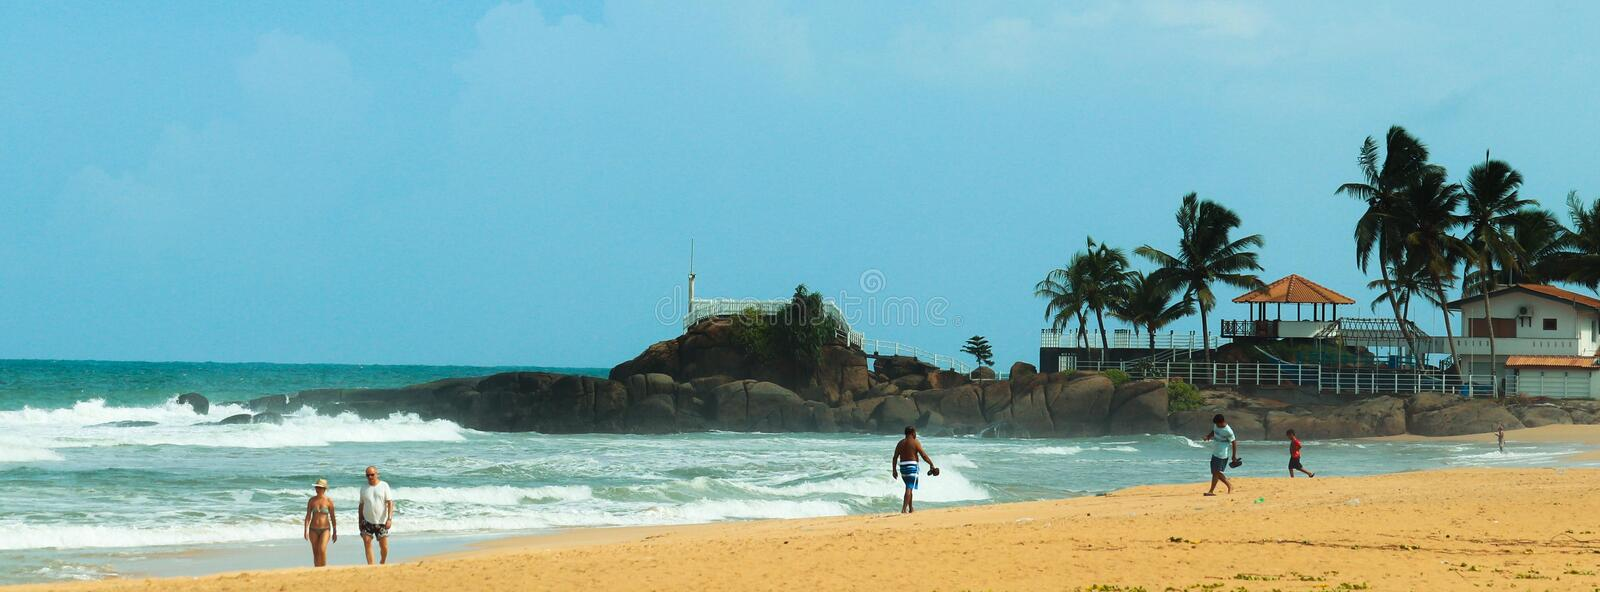 Srilankan Sea Coast. Beauttu of the pearl of the Indian ocean can be seen with this image. This coast near by the premises of REU down south , Sri Lanka royalty free stock image